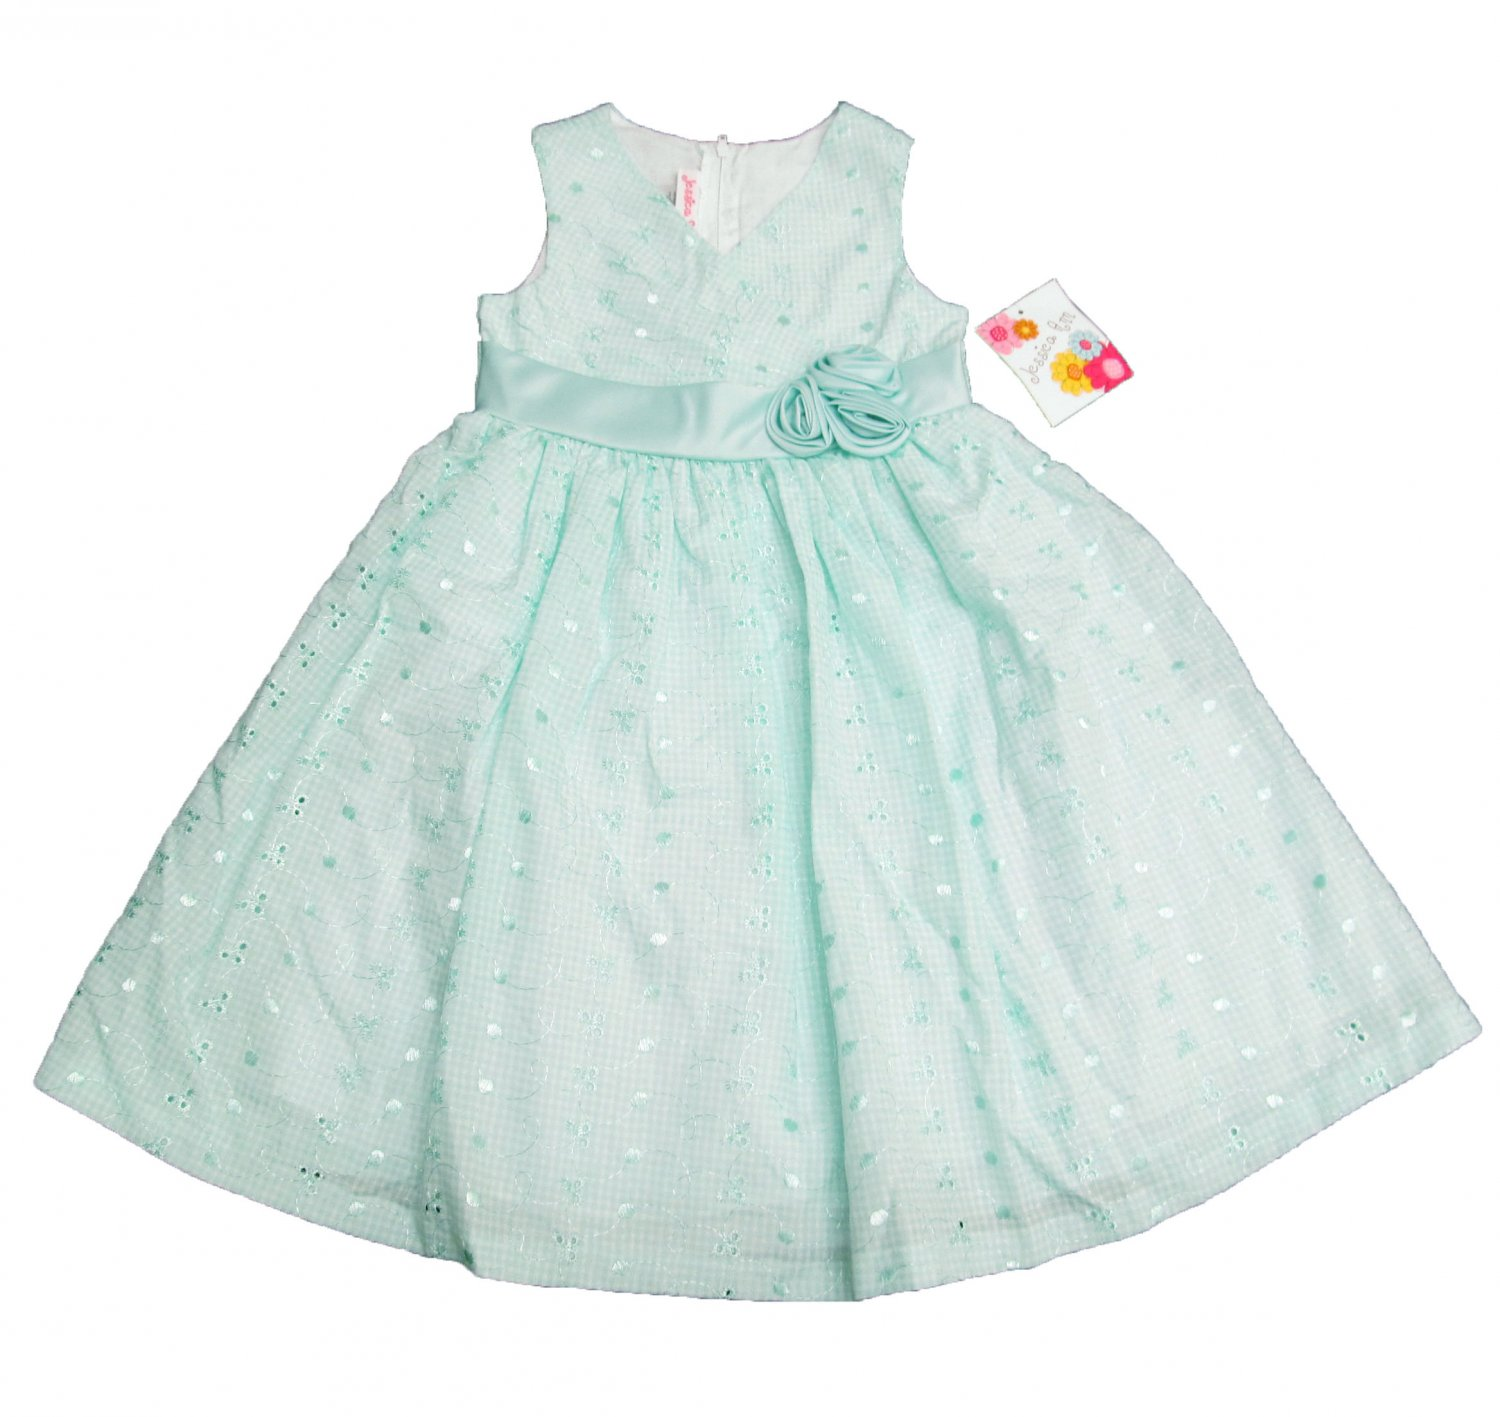 Jessica Ann Girls size 6 Mint Green Gingham Dress Sleeveless Eyelet Spring Summer New